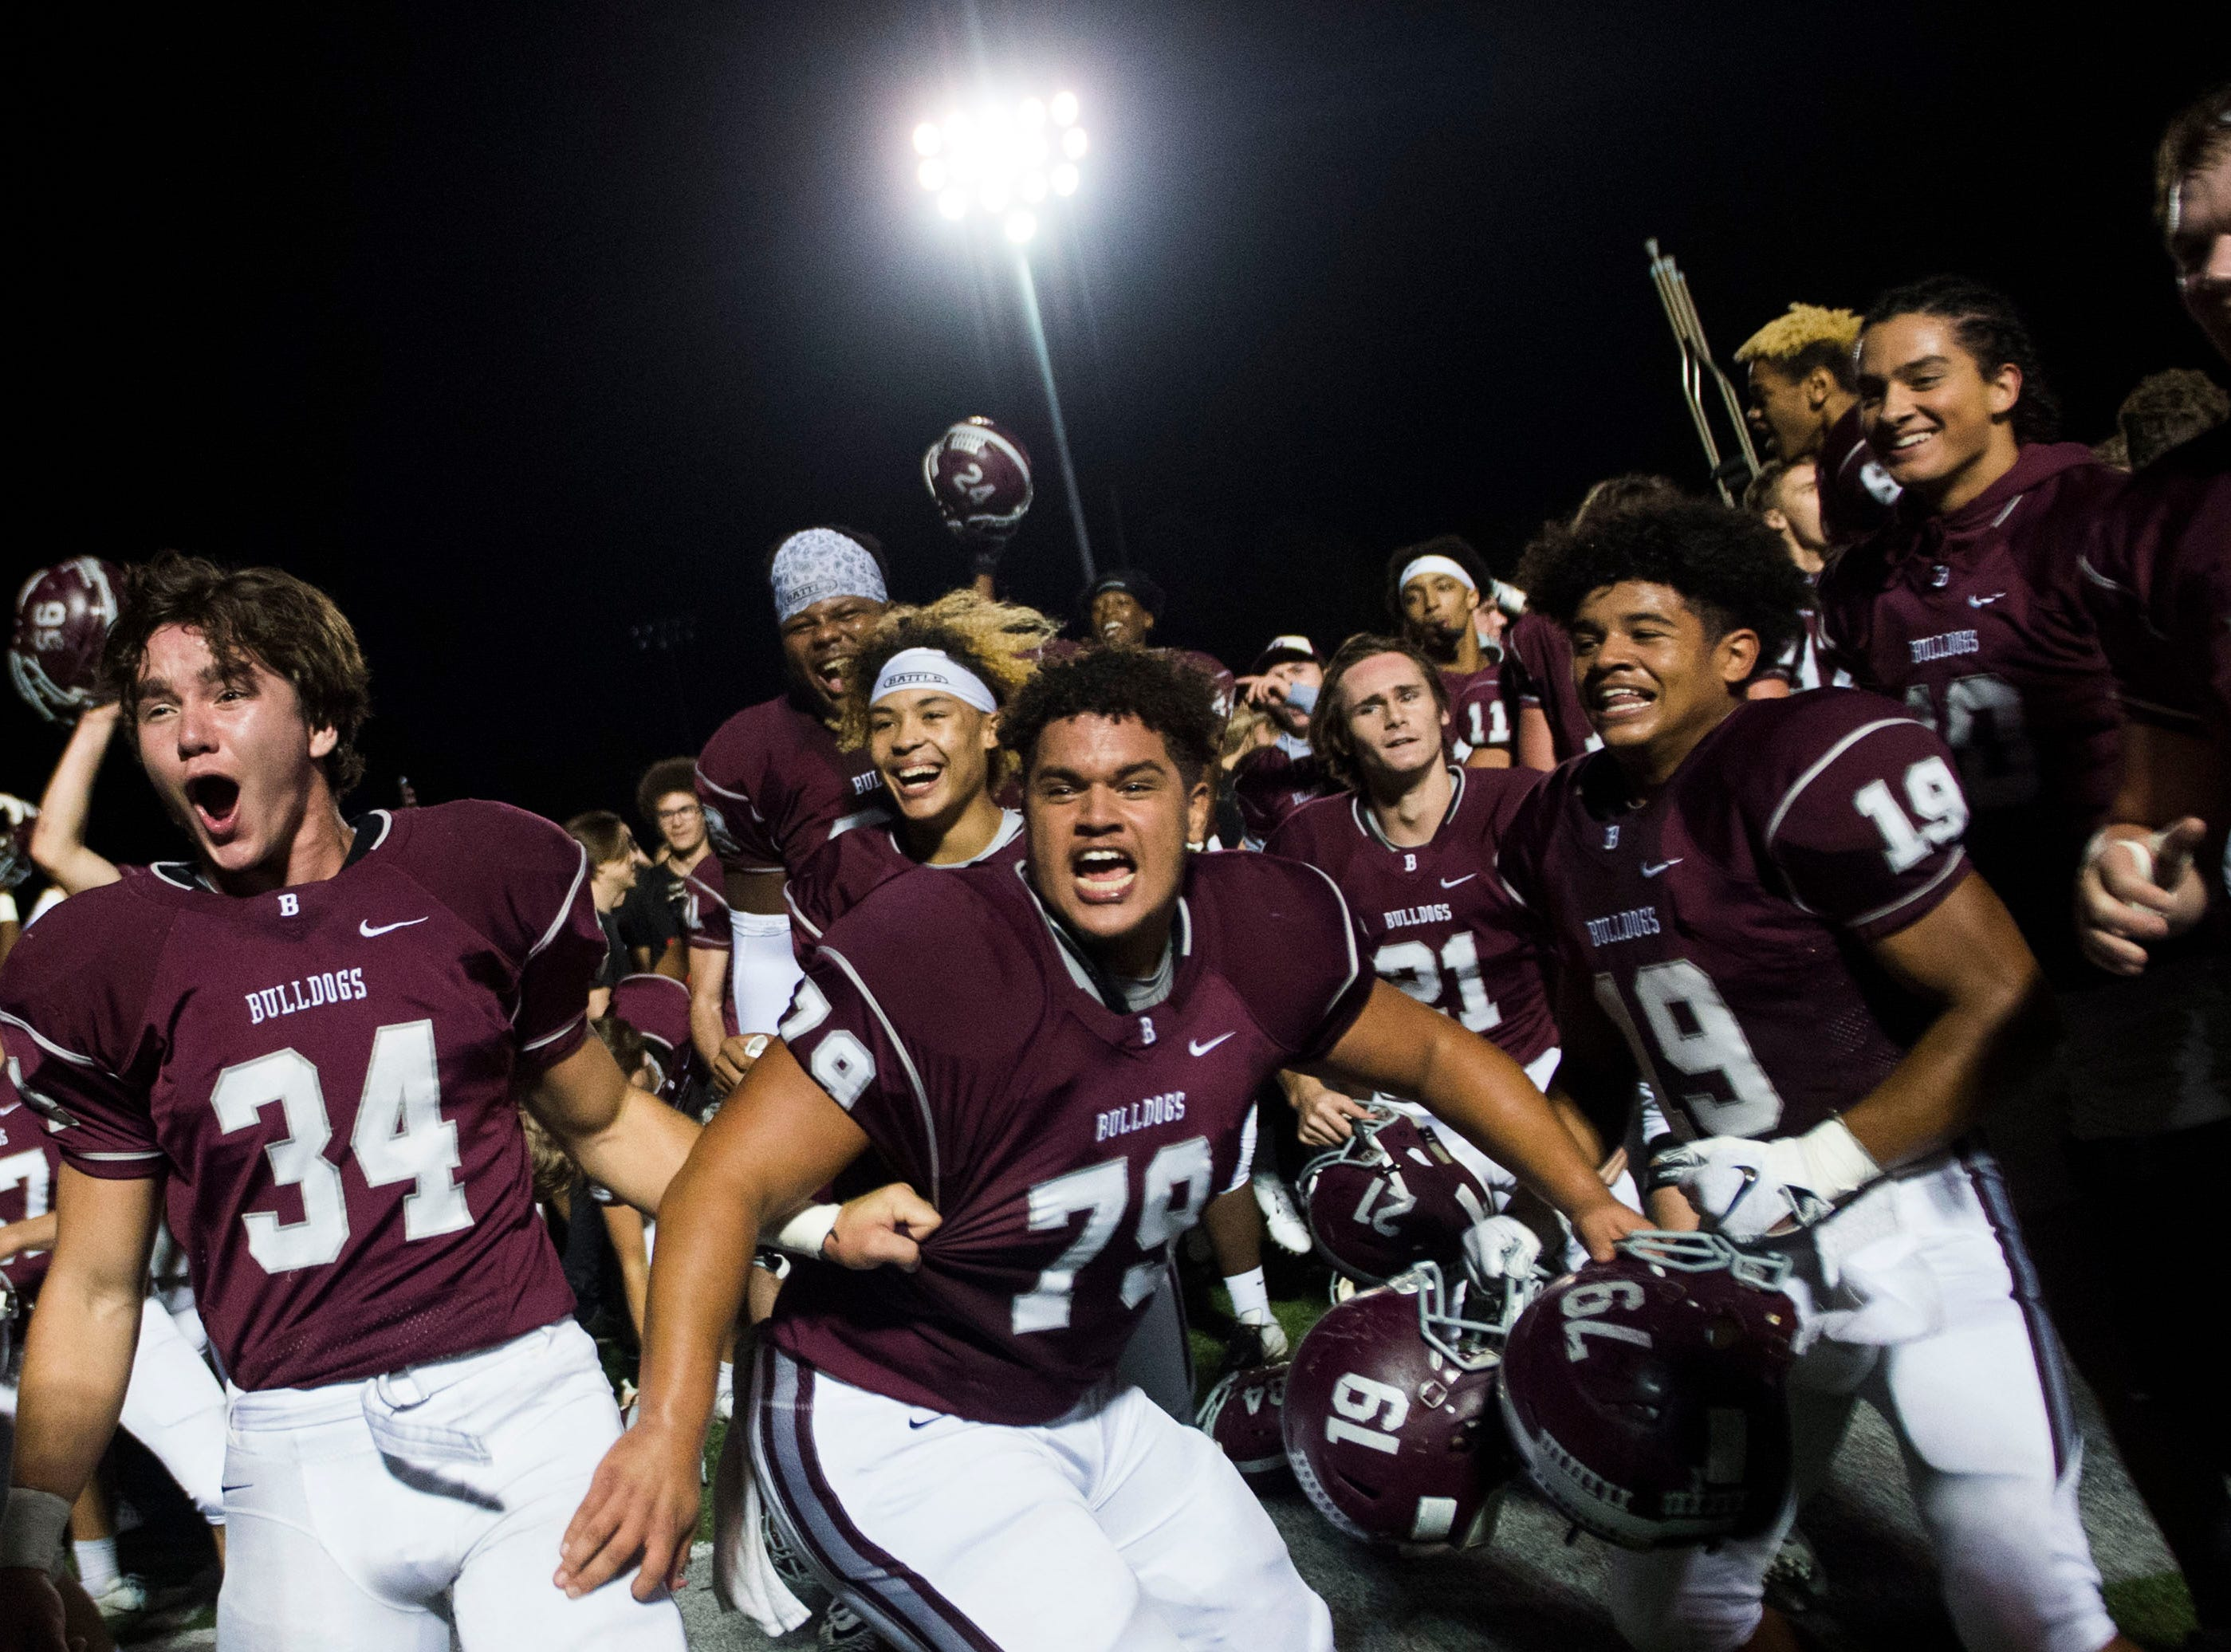 Bearden celebrates their win after a game between Bearden and Farragut at Bearden Thursday, Oct. 11, 2018. Bearden took down Farragut 17-13.